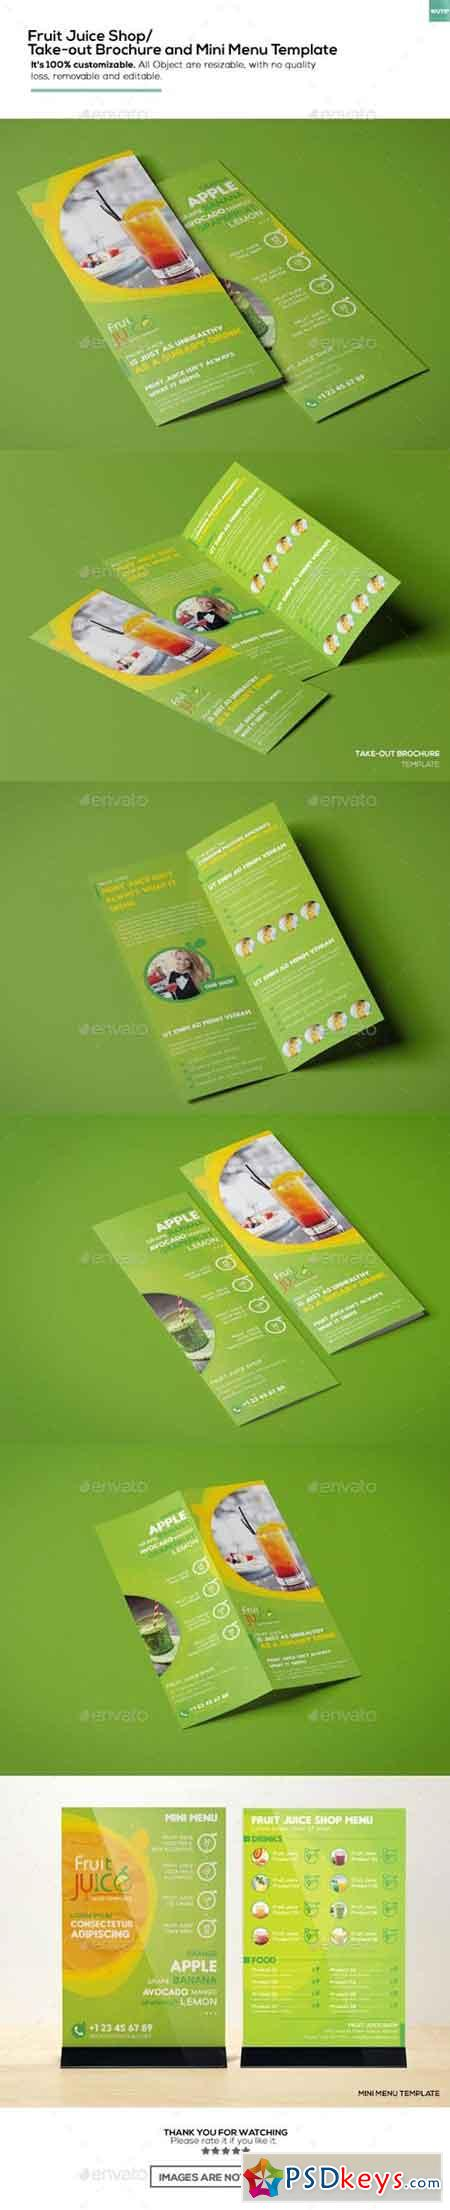 Fruit Juice Shop Take-out Brochure and Mini Menu Template 16402367